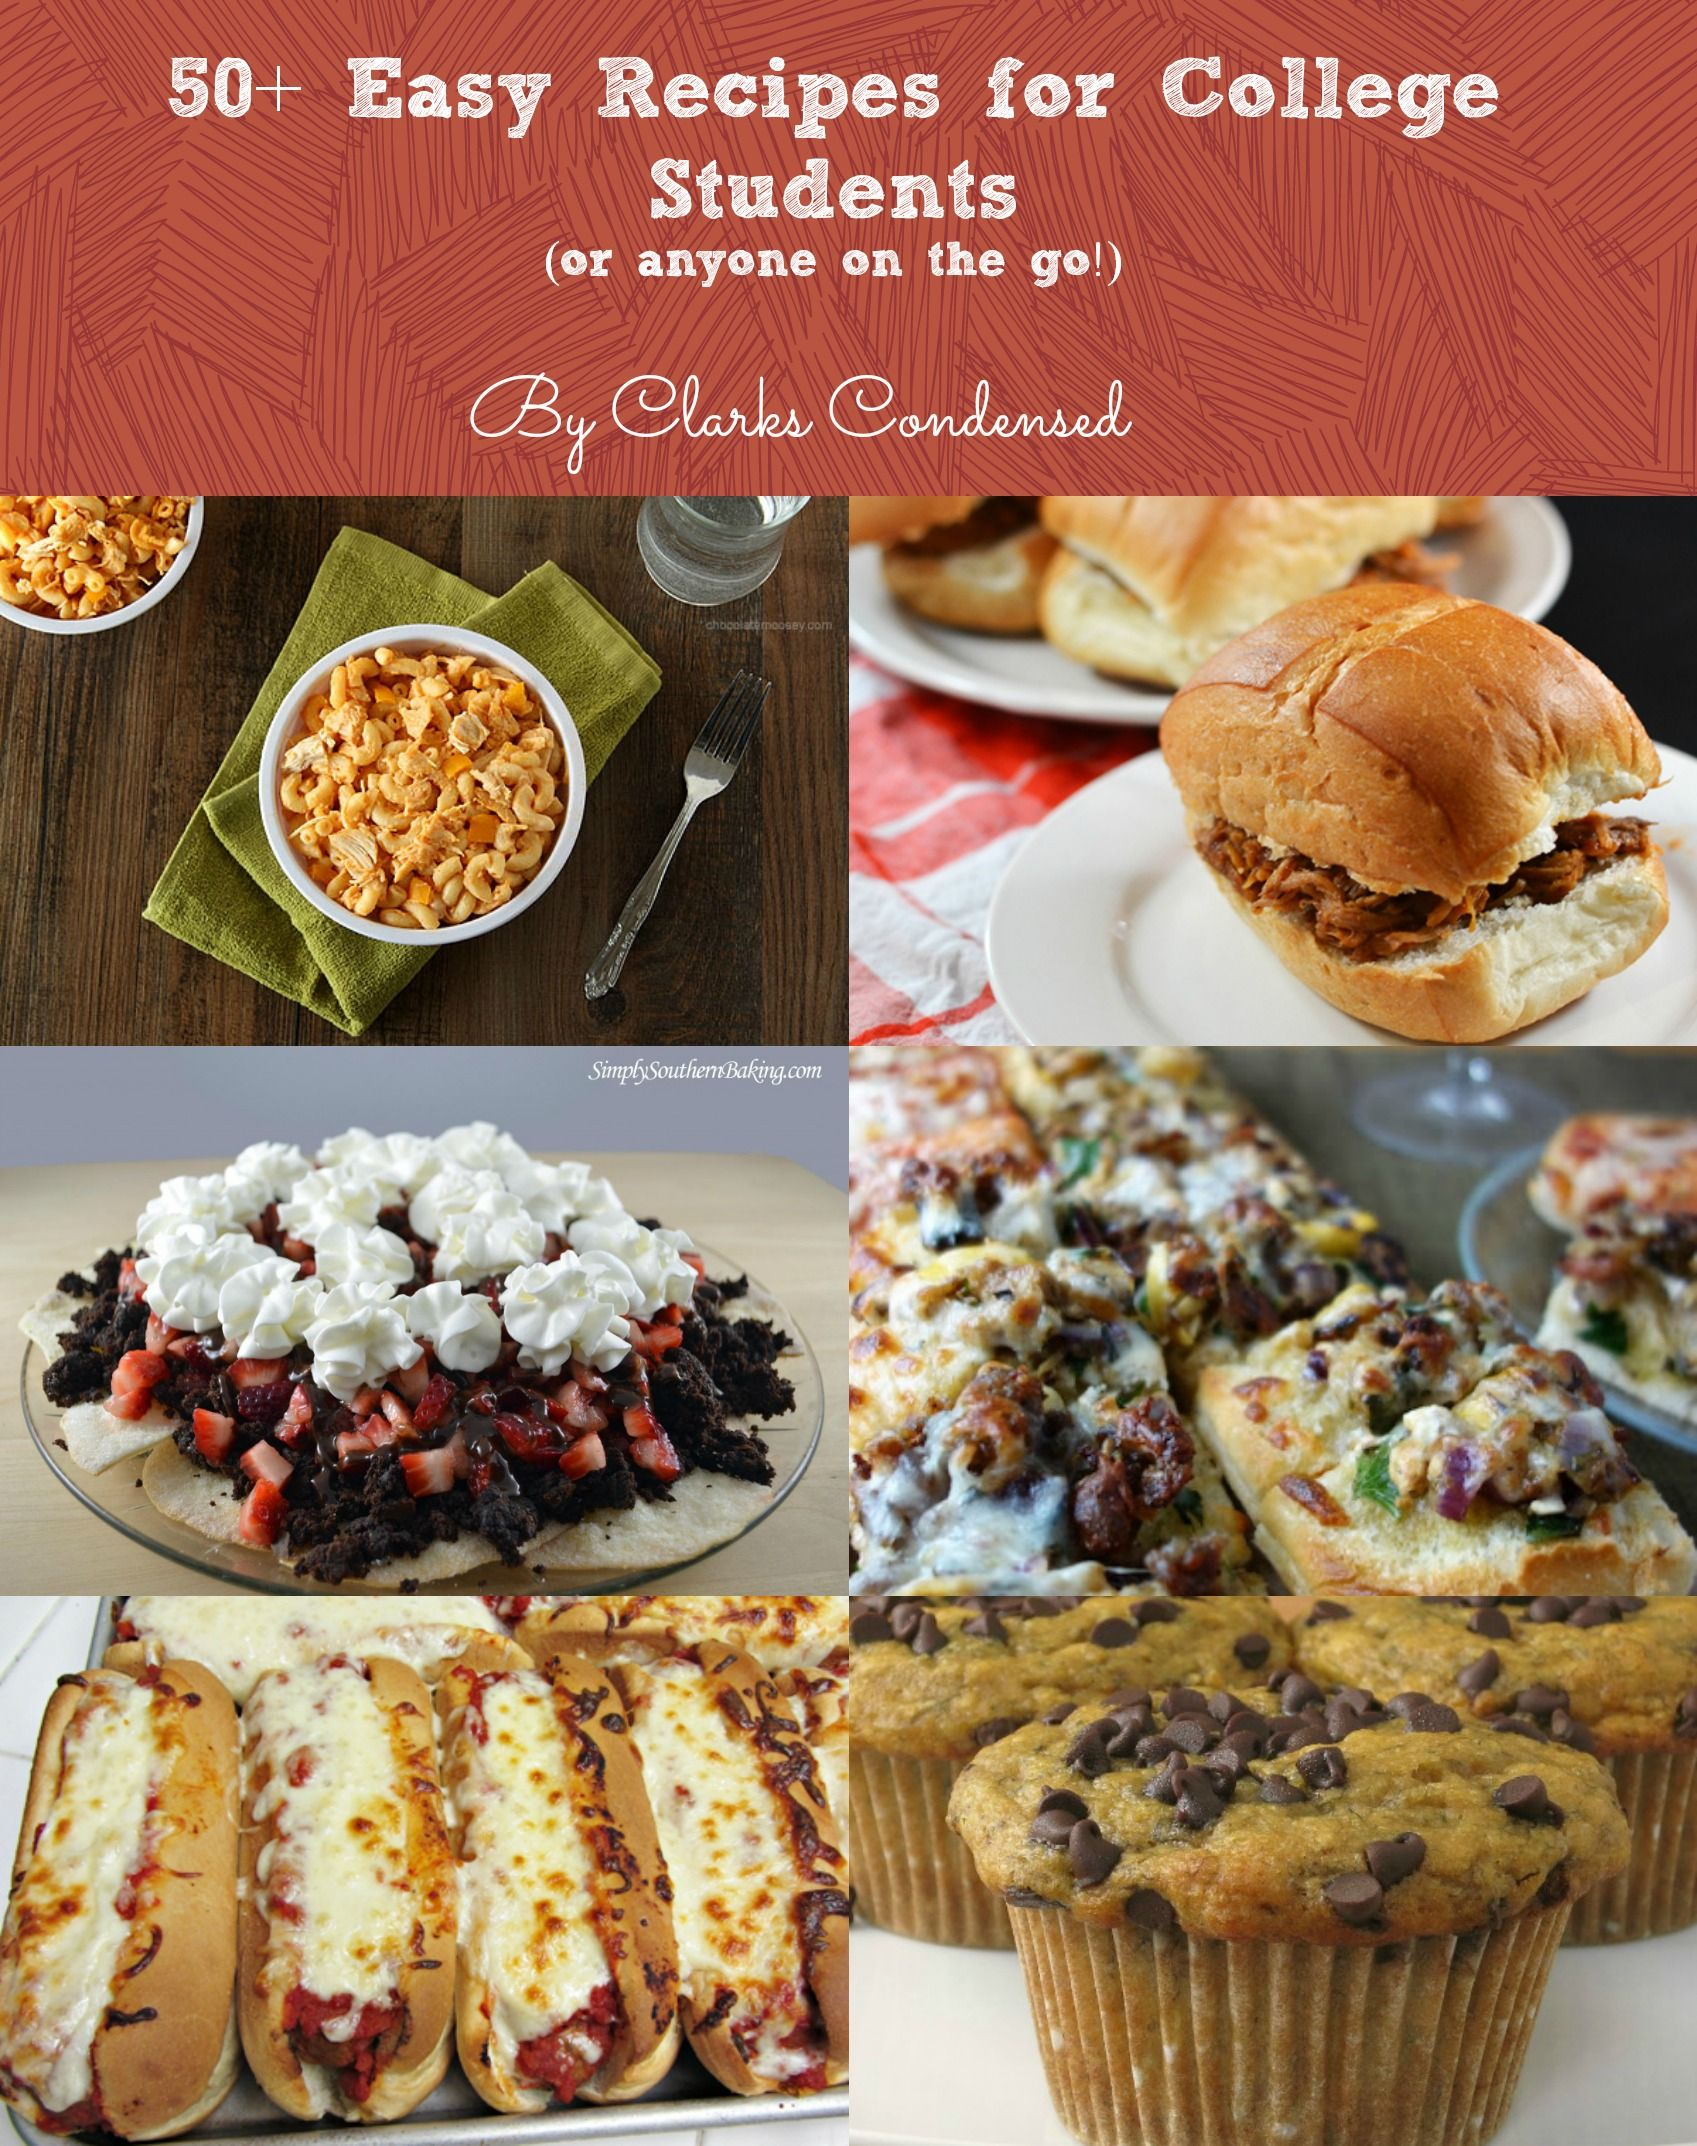 30 Minuten Küche Easy Cooking The 25 43 Best College Student Recipes Ideas On Pinterest